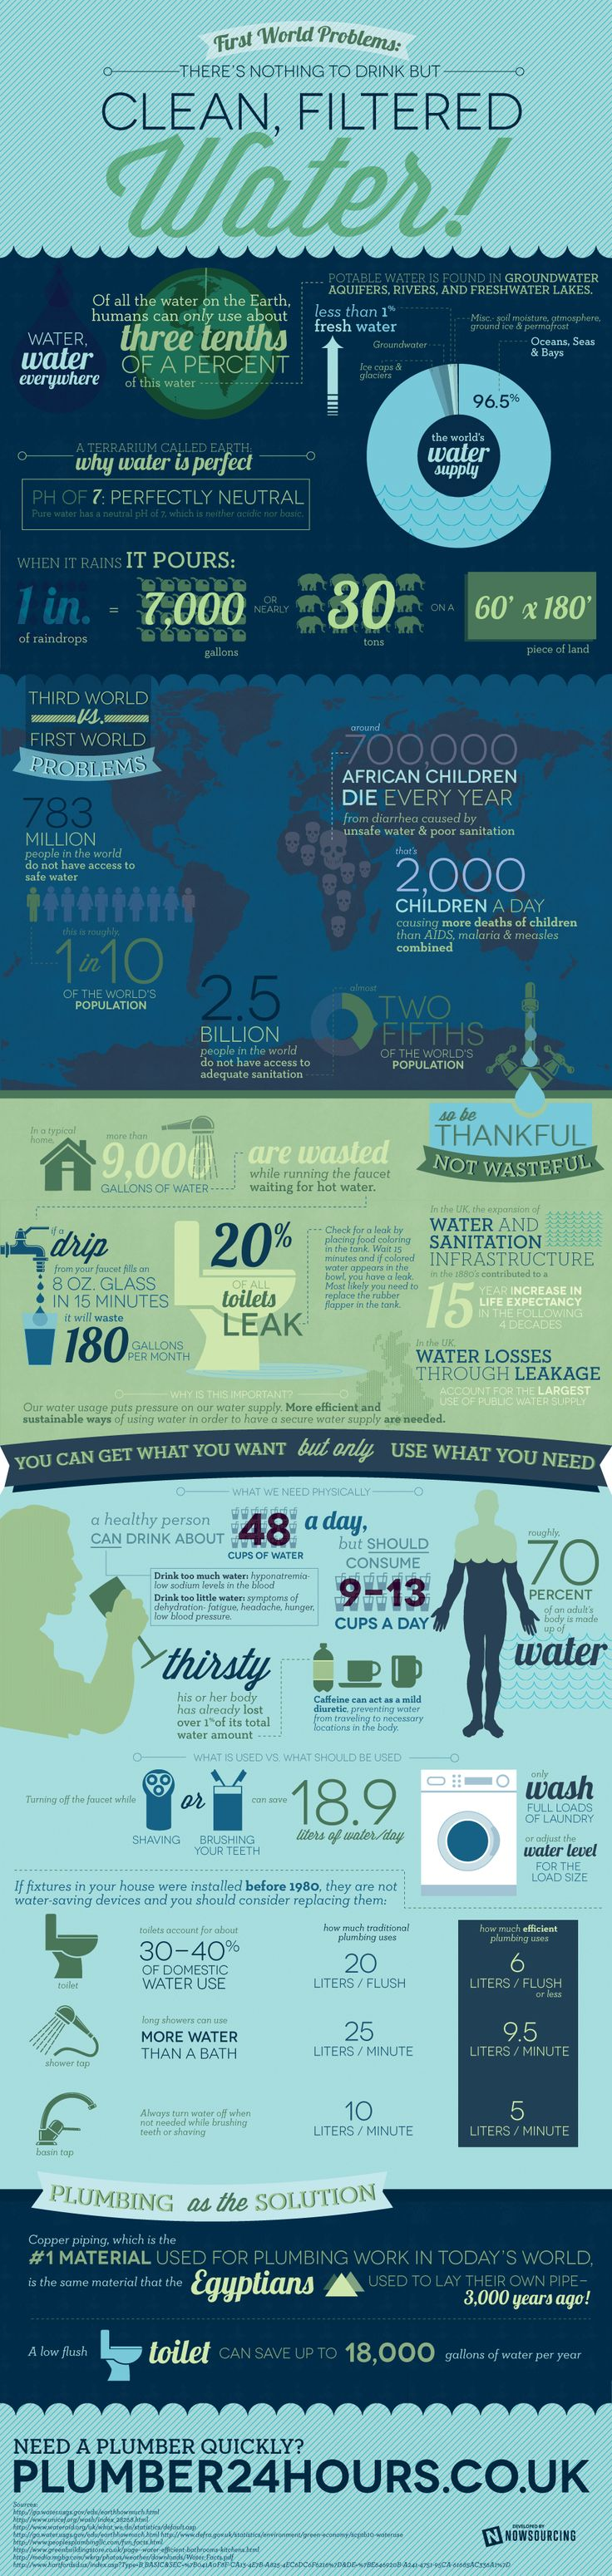 Think you know a lot about water? Check out this infographic for a wide range of information on this life-giving substance.